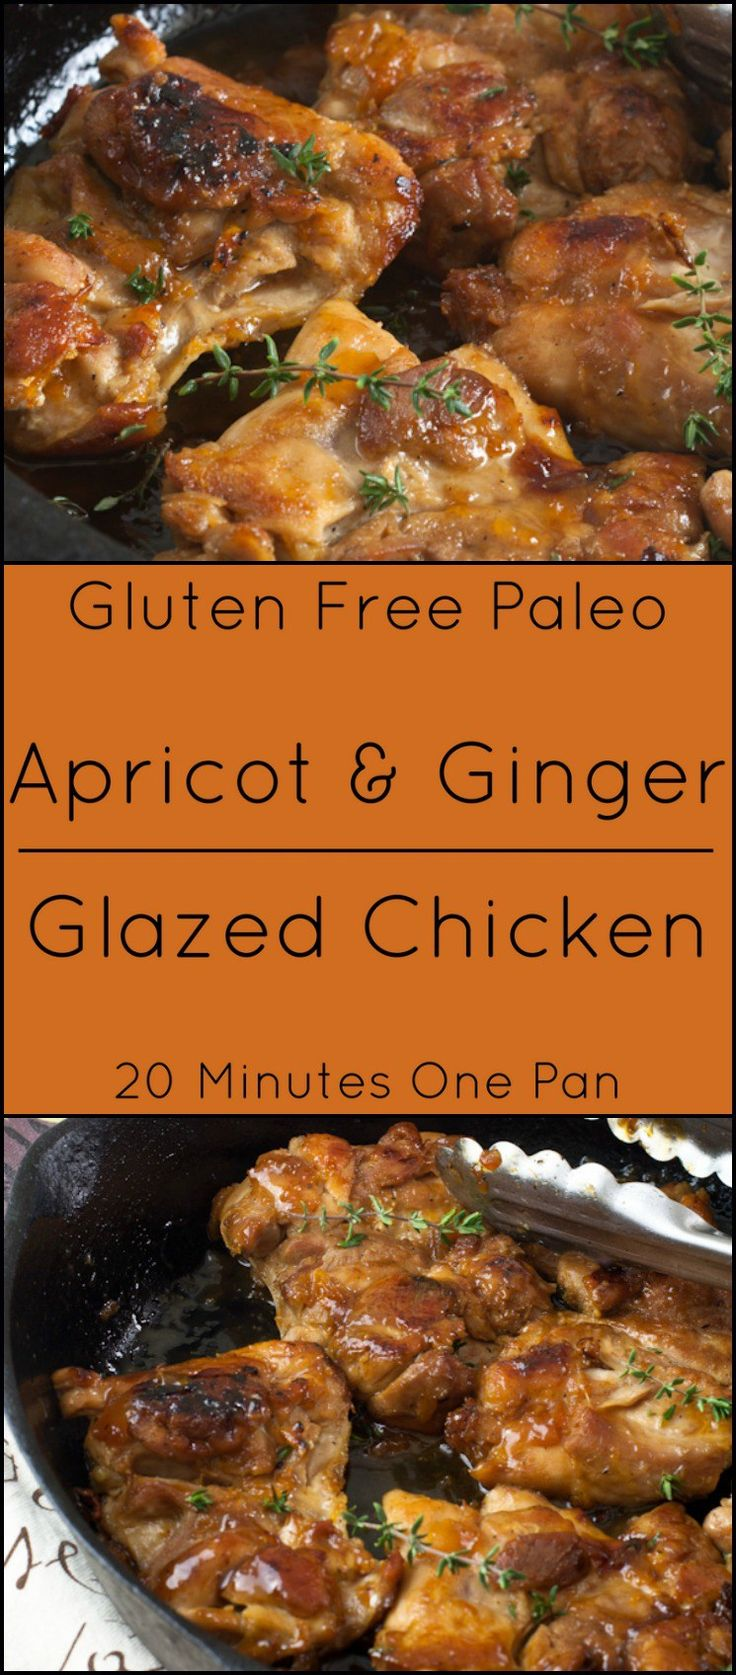 This Apricot & Ginger Glazed Chicken is ready in under 30 minutes, gluten free and Paleo and cooks in one pan!